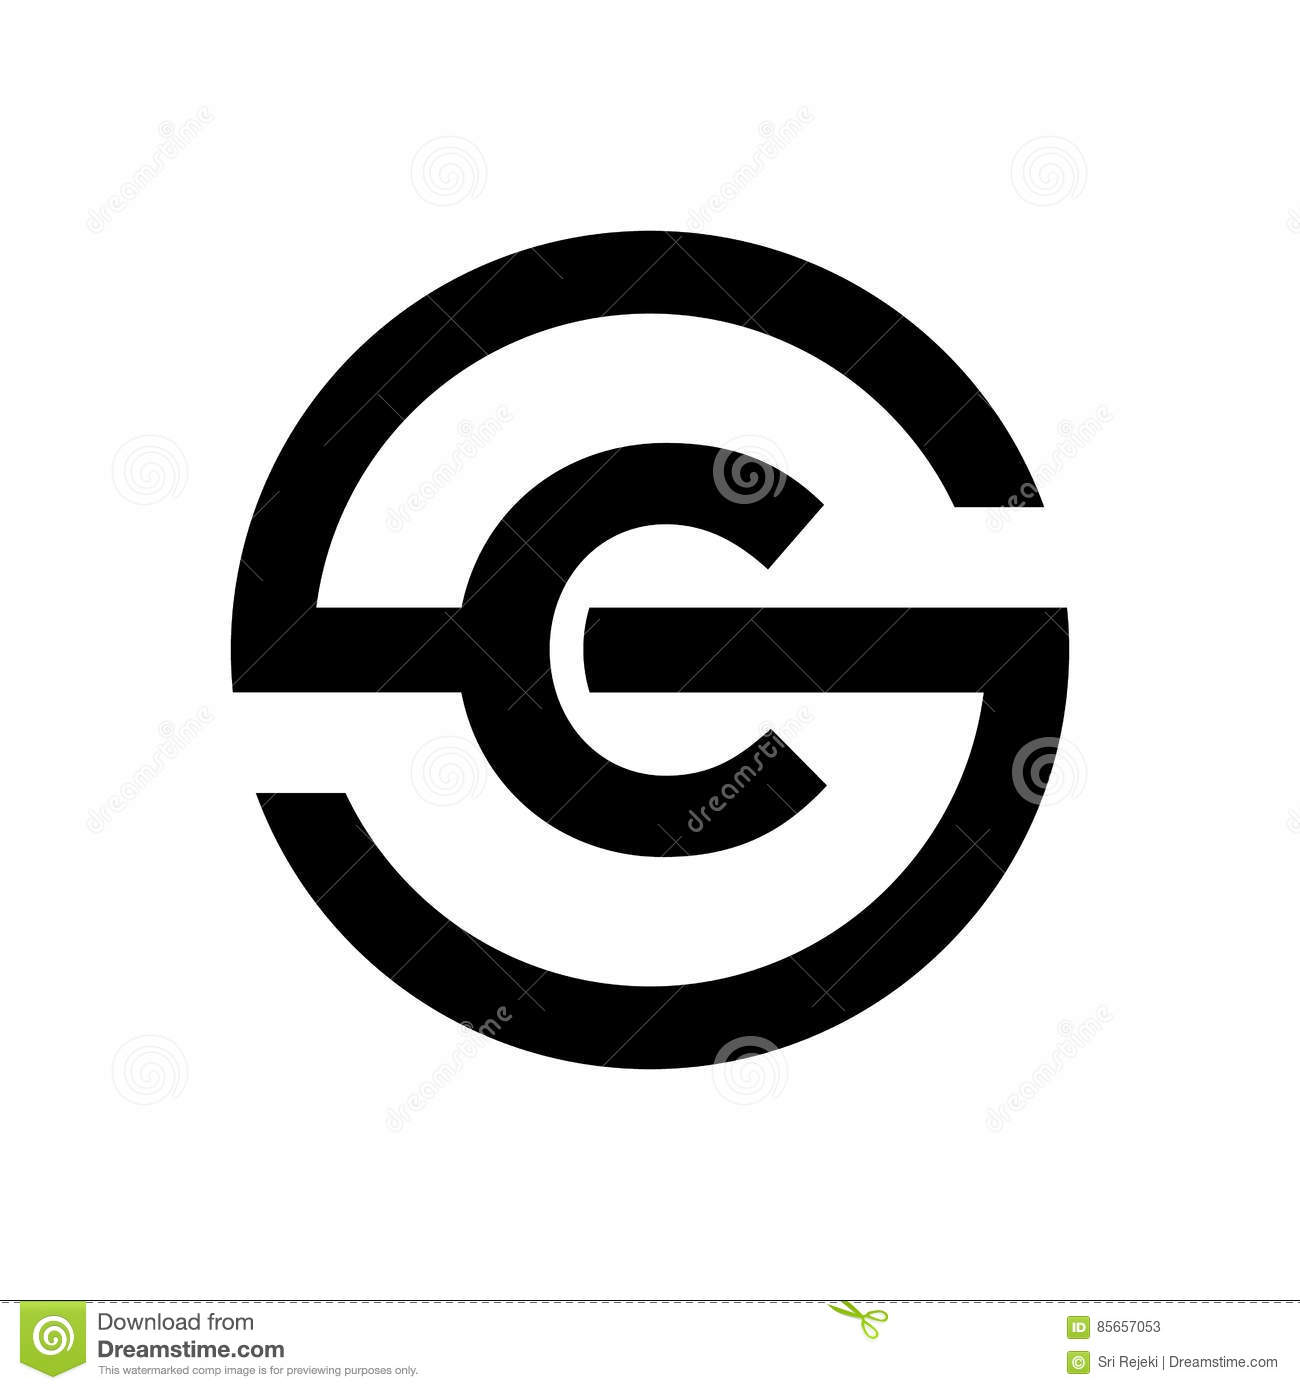 Letter s symbol combination with c stock vector illustration of letter s symbol combination with c biocorpaavc Images